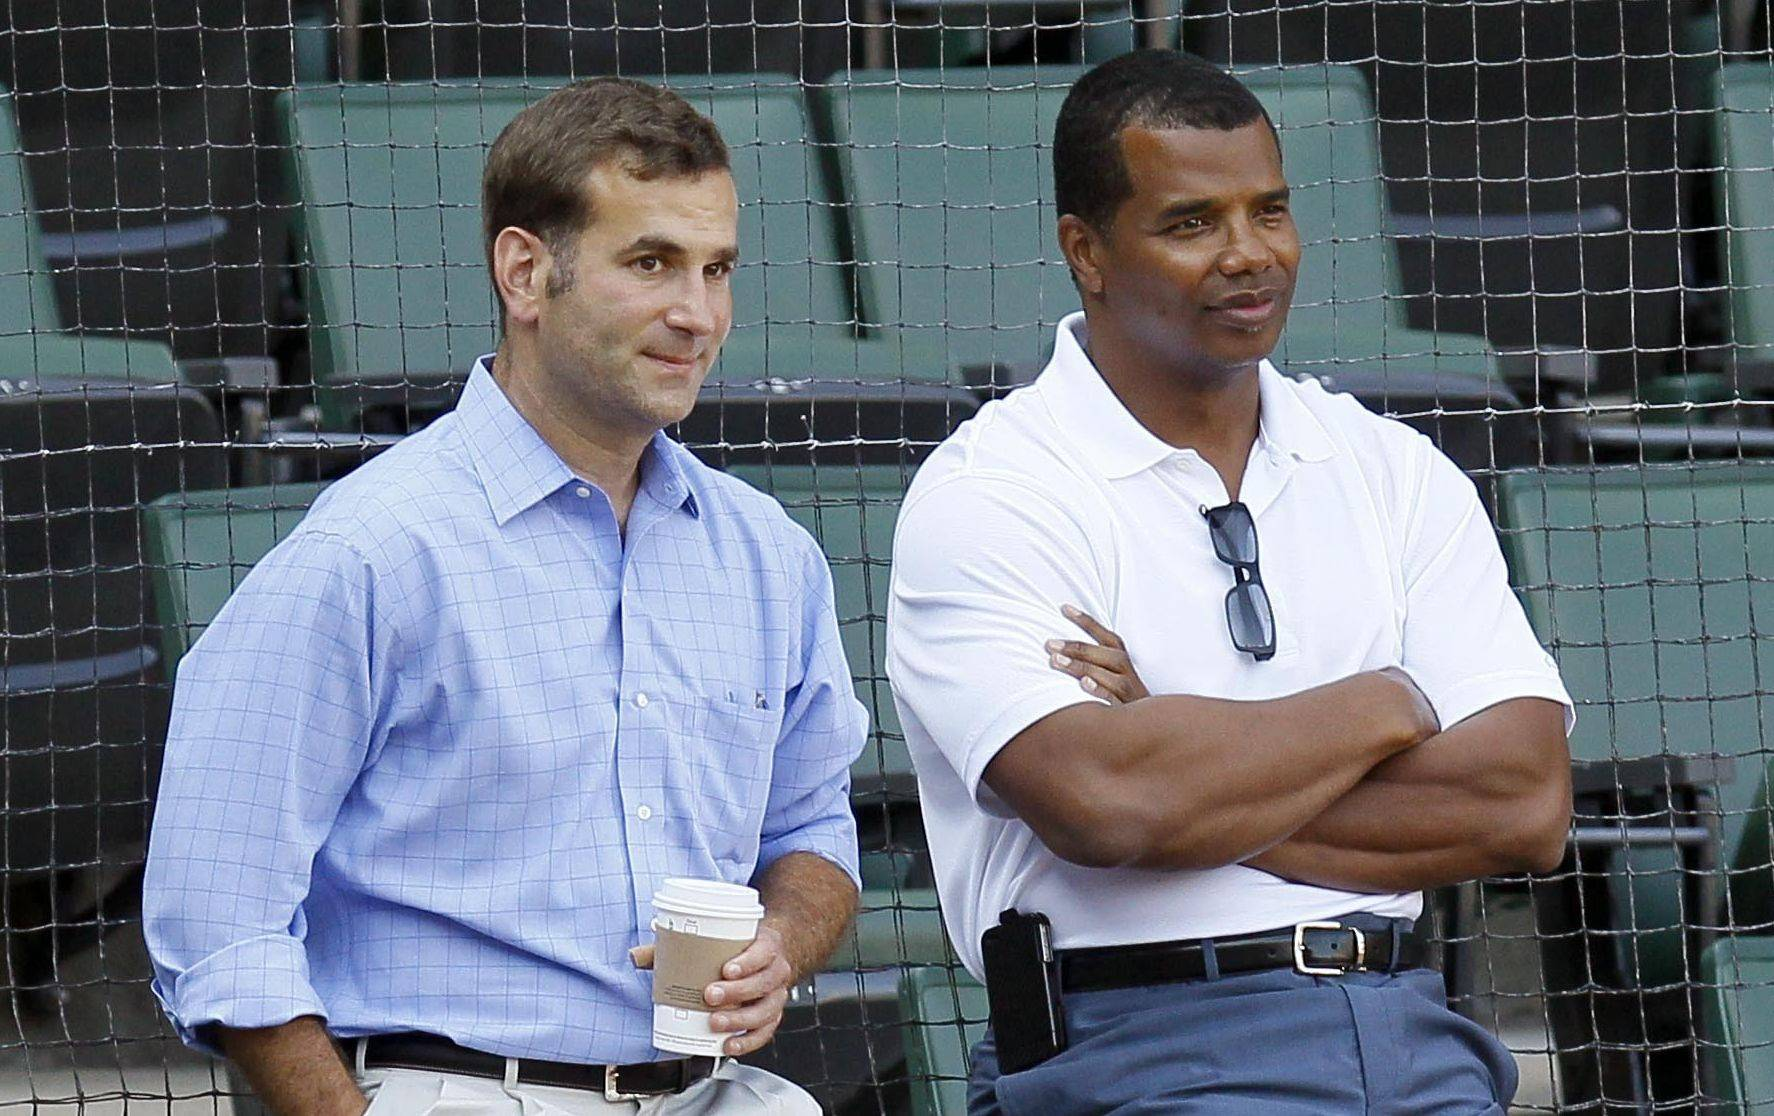 The White Sox will promote Kenny Williams, right, to president of baseball operations and Rick Hahn, left, to GM today.